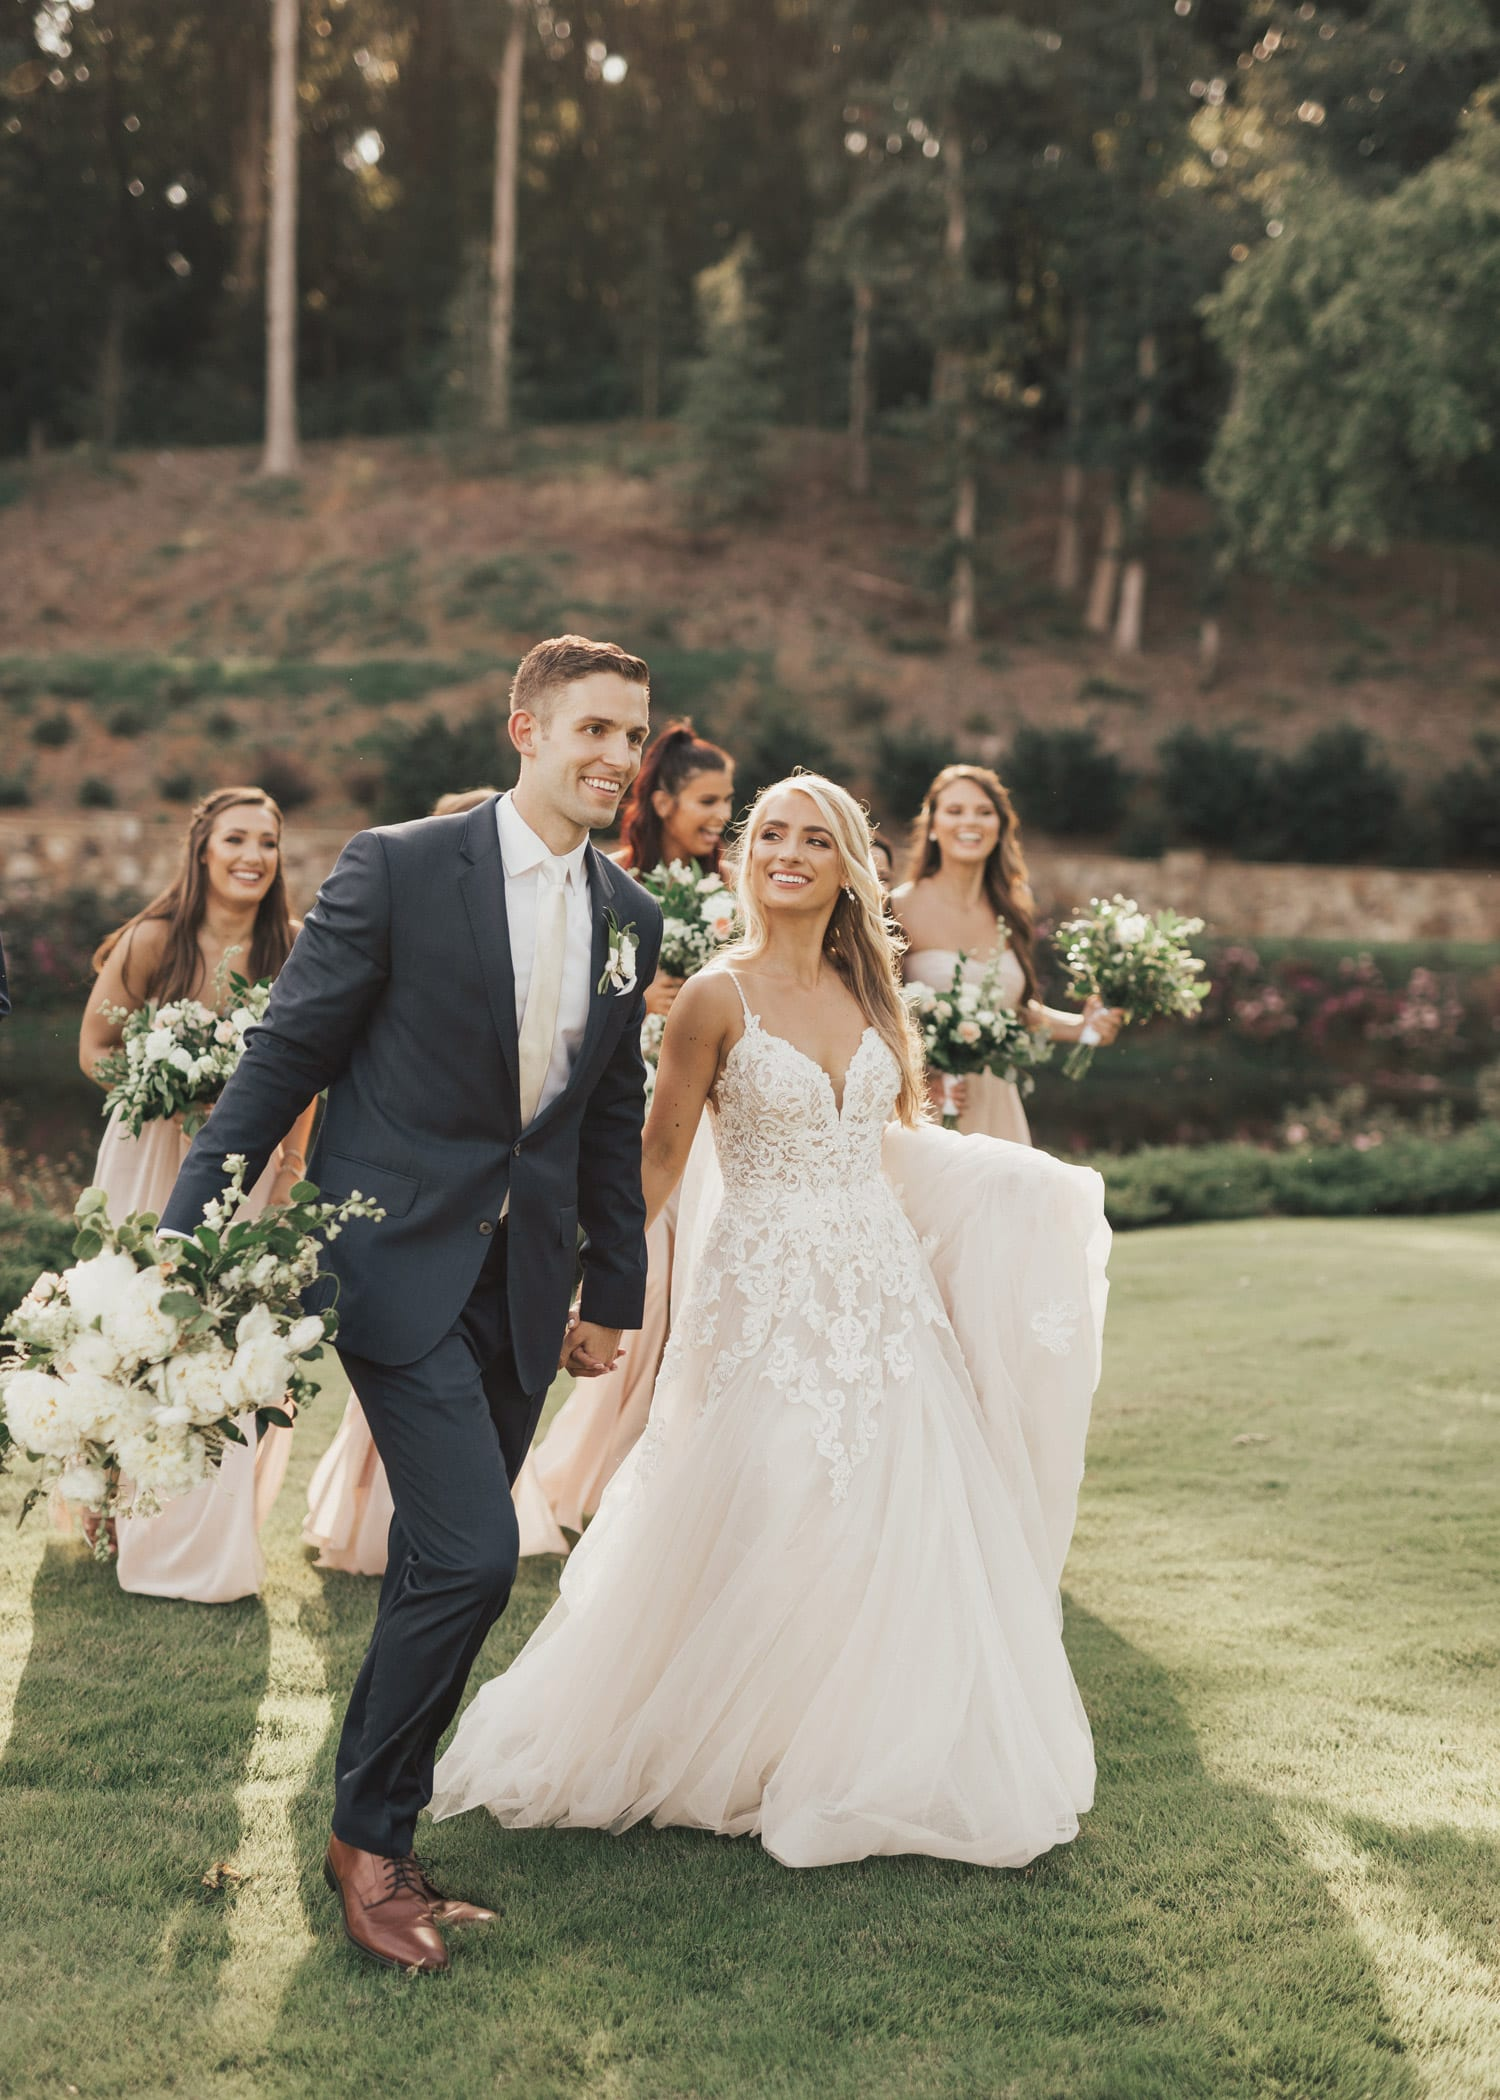 Bridal party walks along the grass